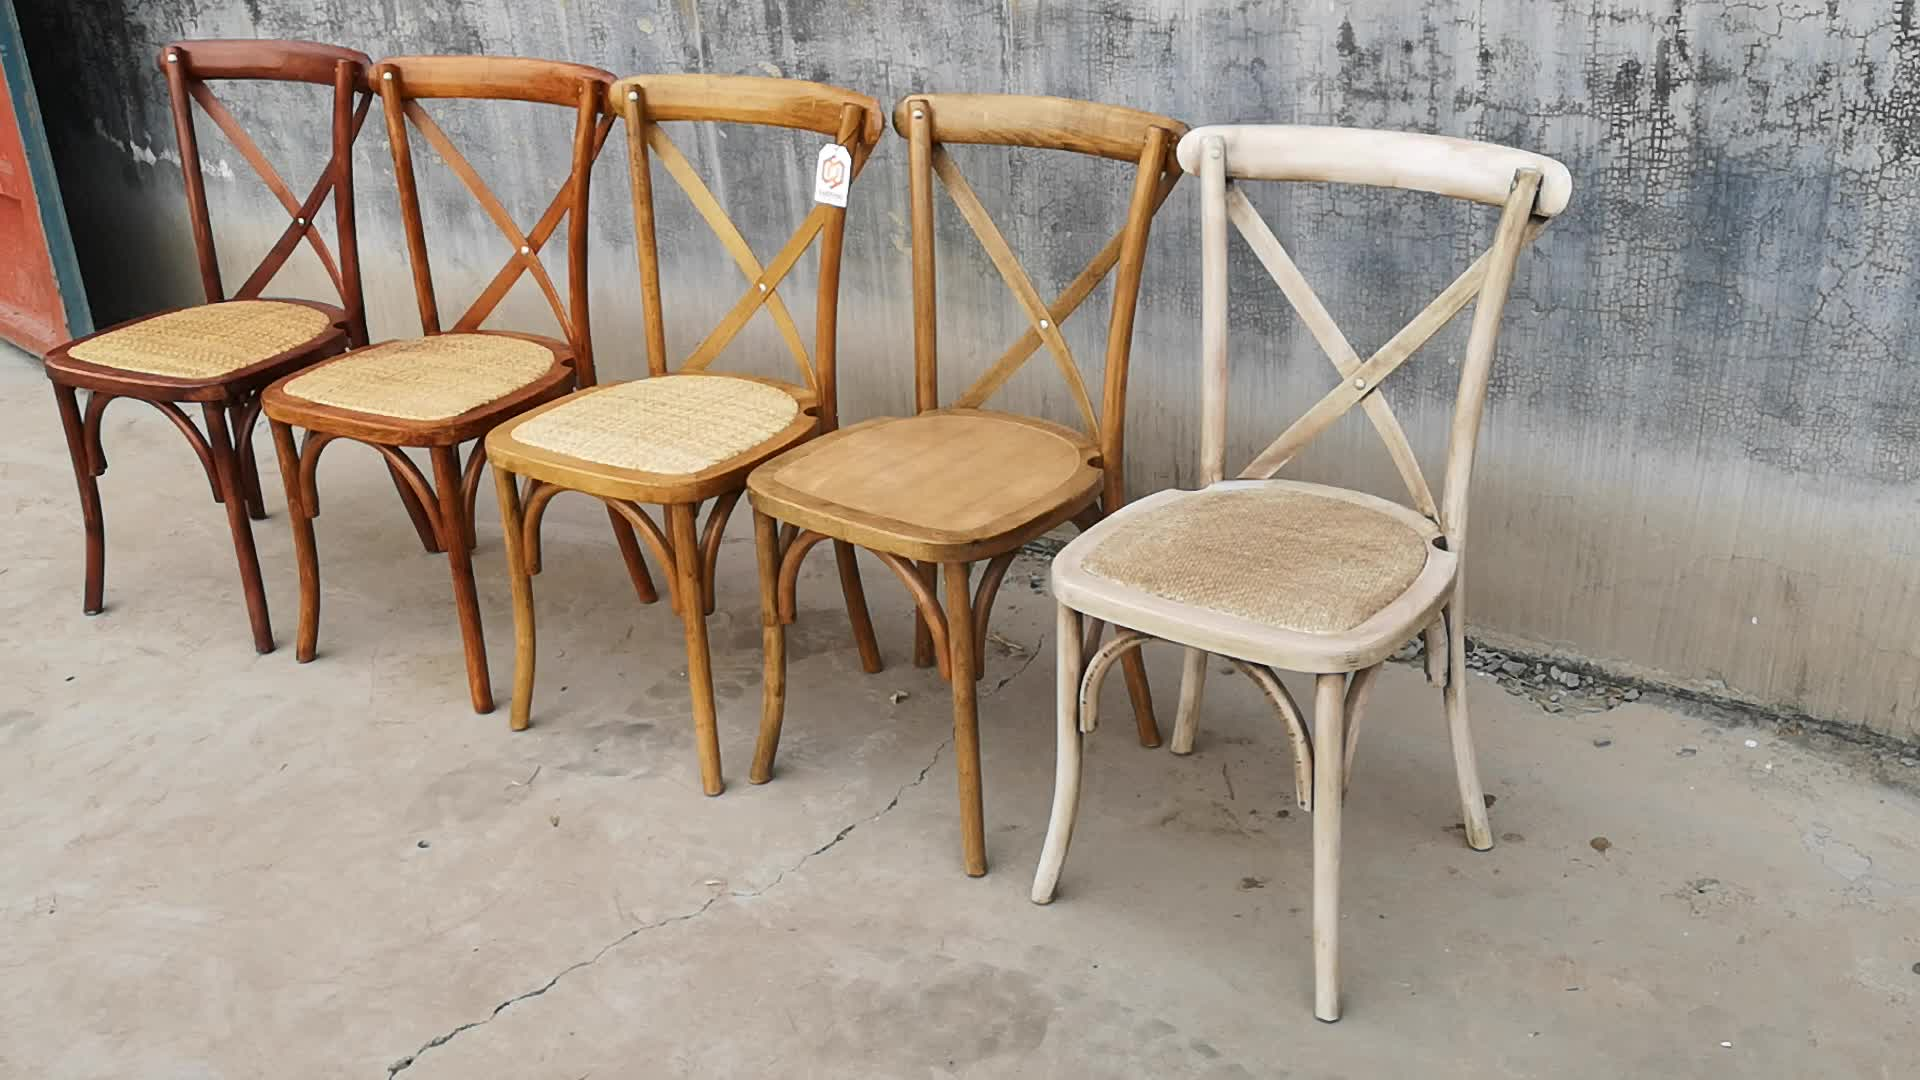 Professional Design Wedding Decorations Stackable Wood Cross Back Iron Chair